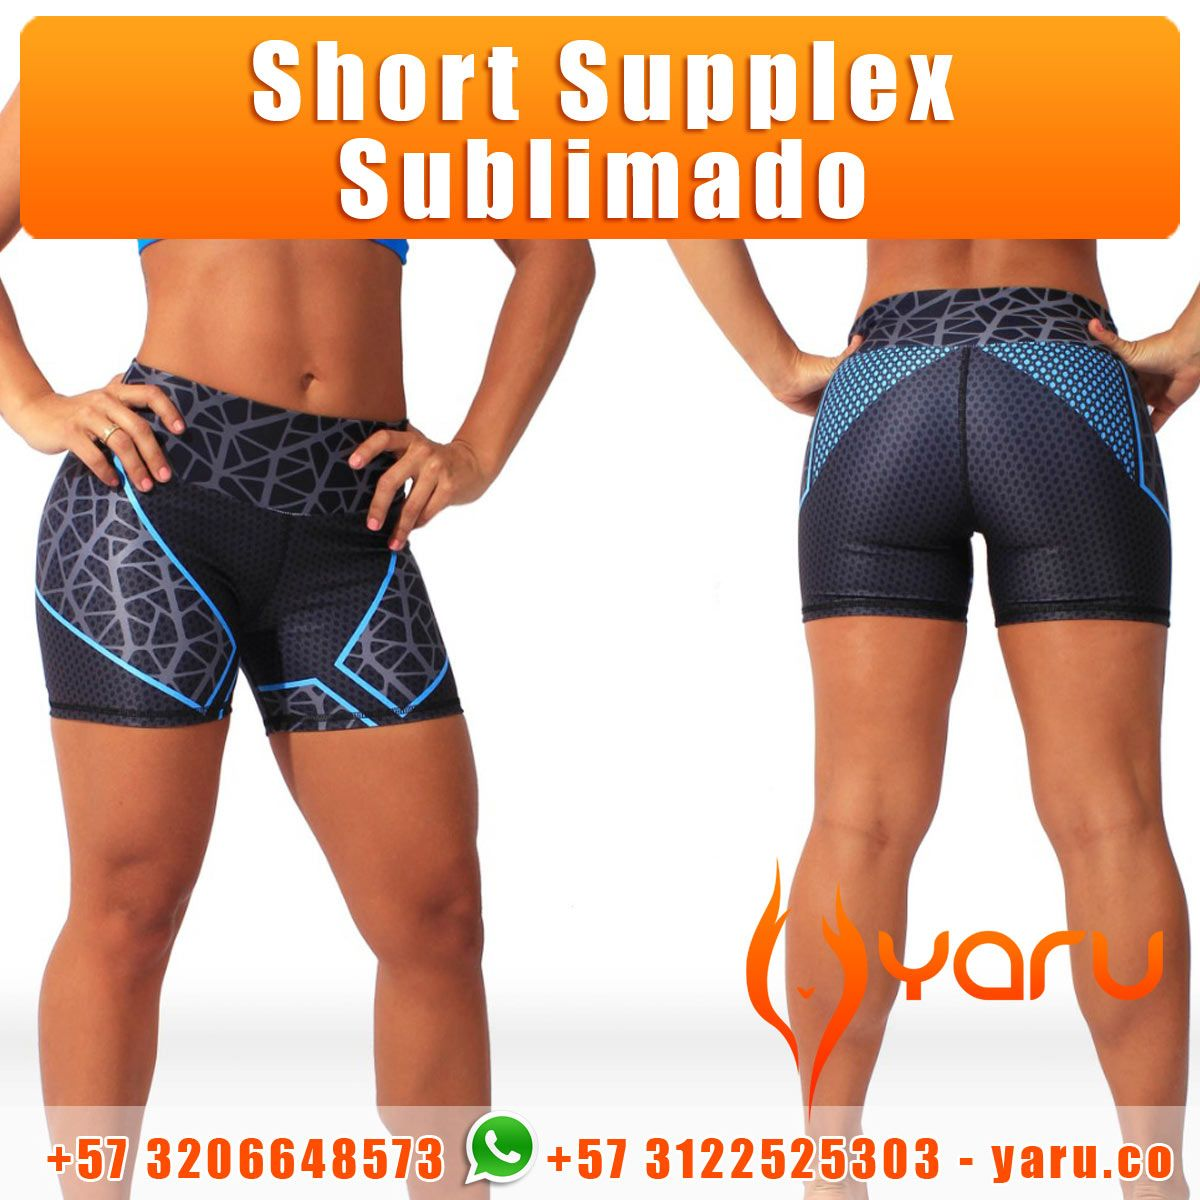 0c5e6fbe0a3f4 Short Supplex Sublimado